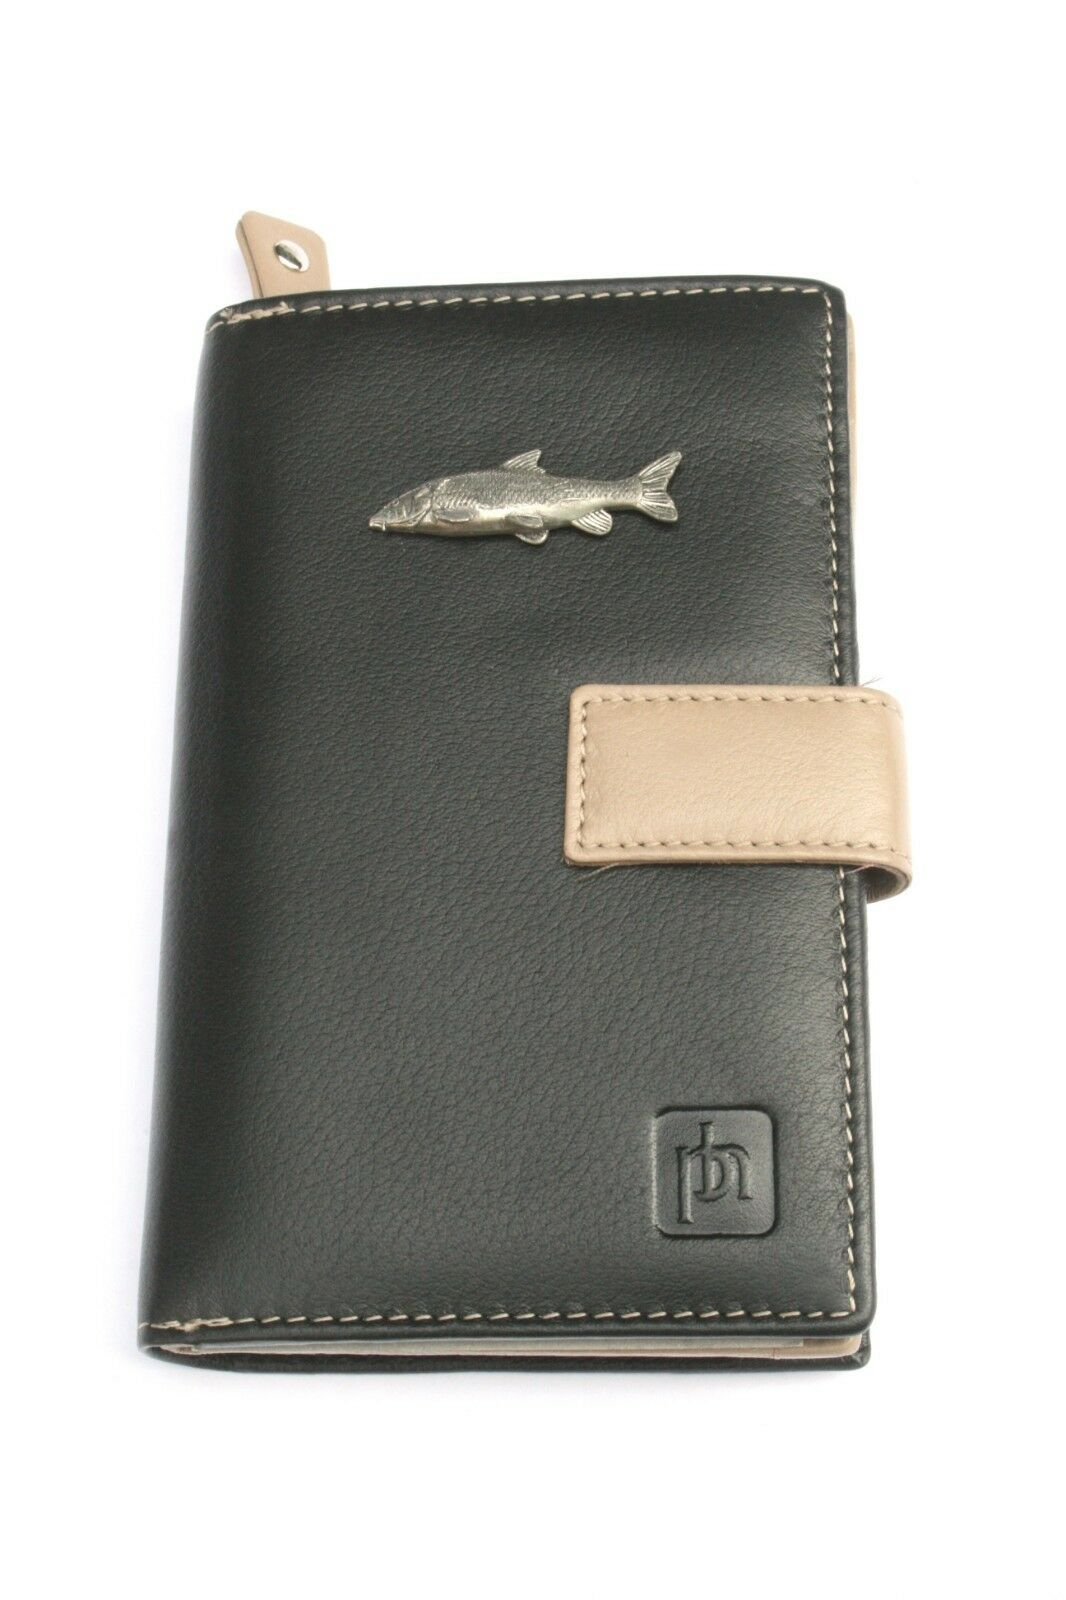 Barbel Fish Fishing Leather Purse with Zipped Pocket RFID Safe Ladies Gift 019